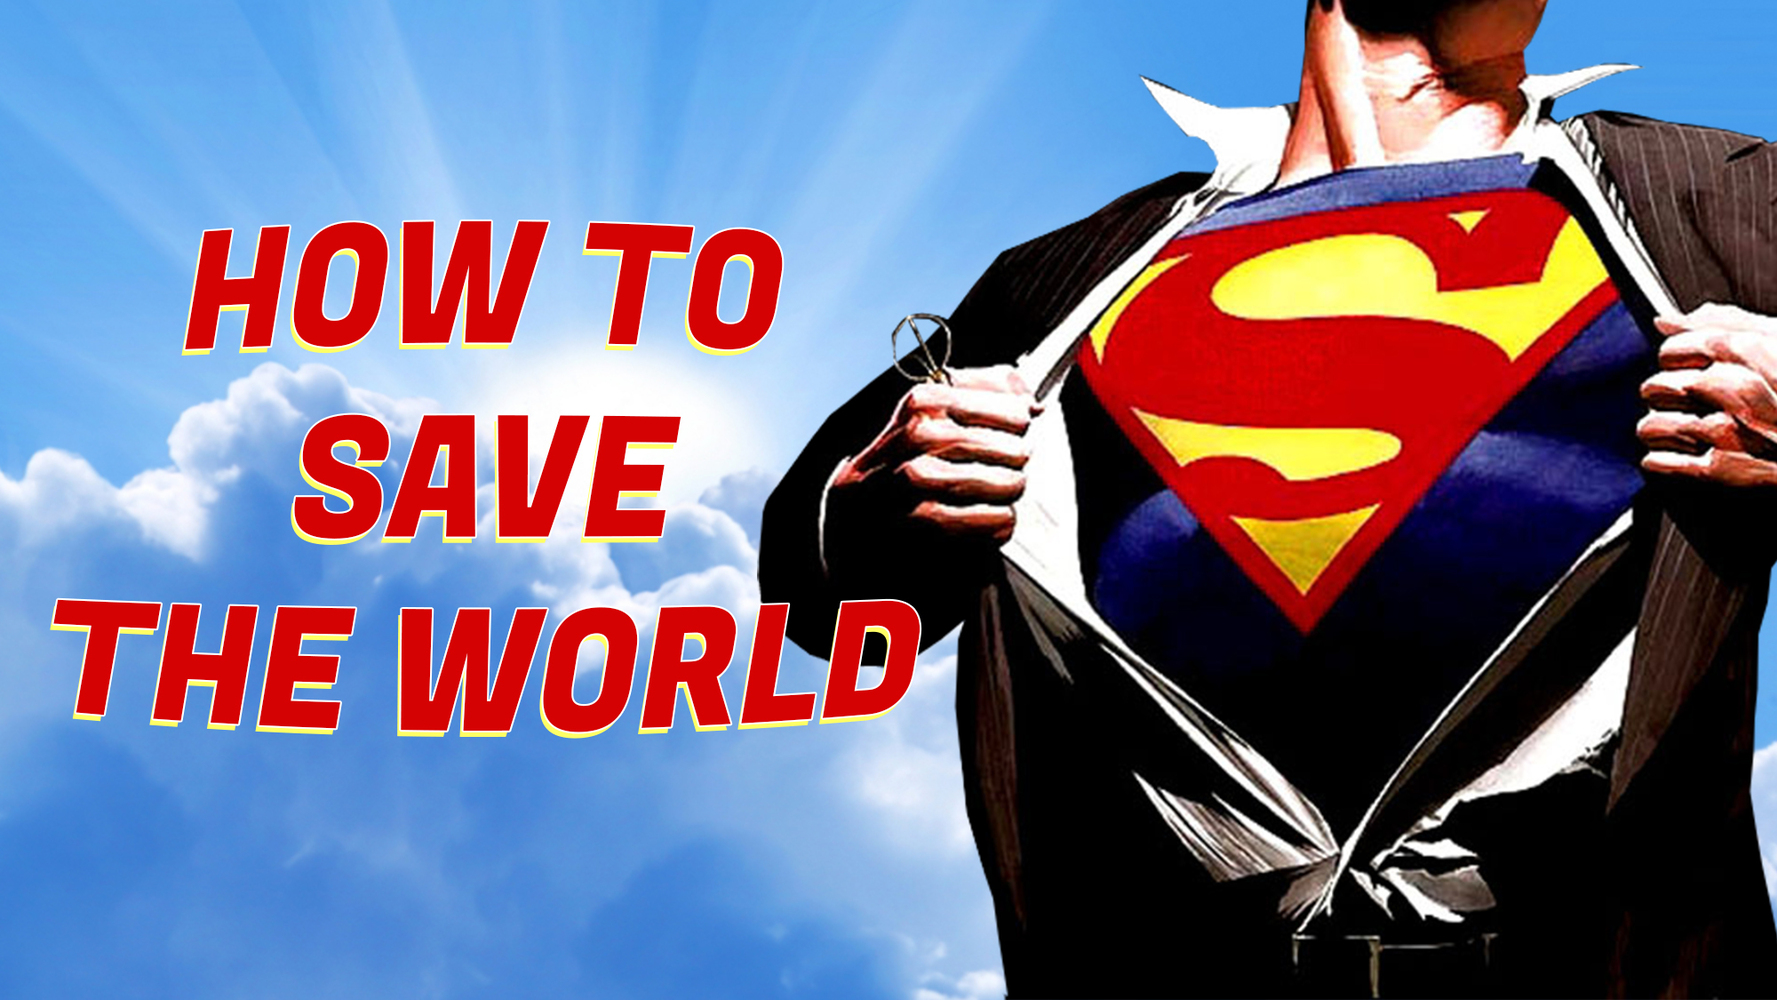 How to Save the World (In One Easy Step!)